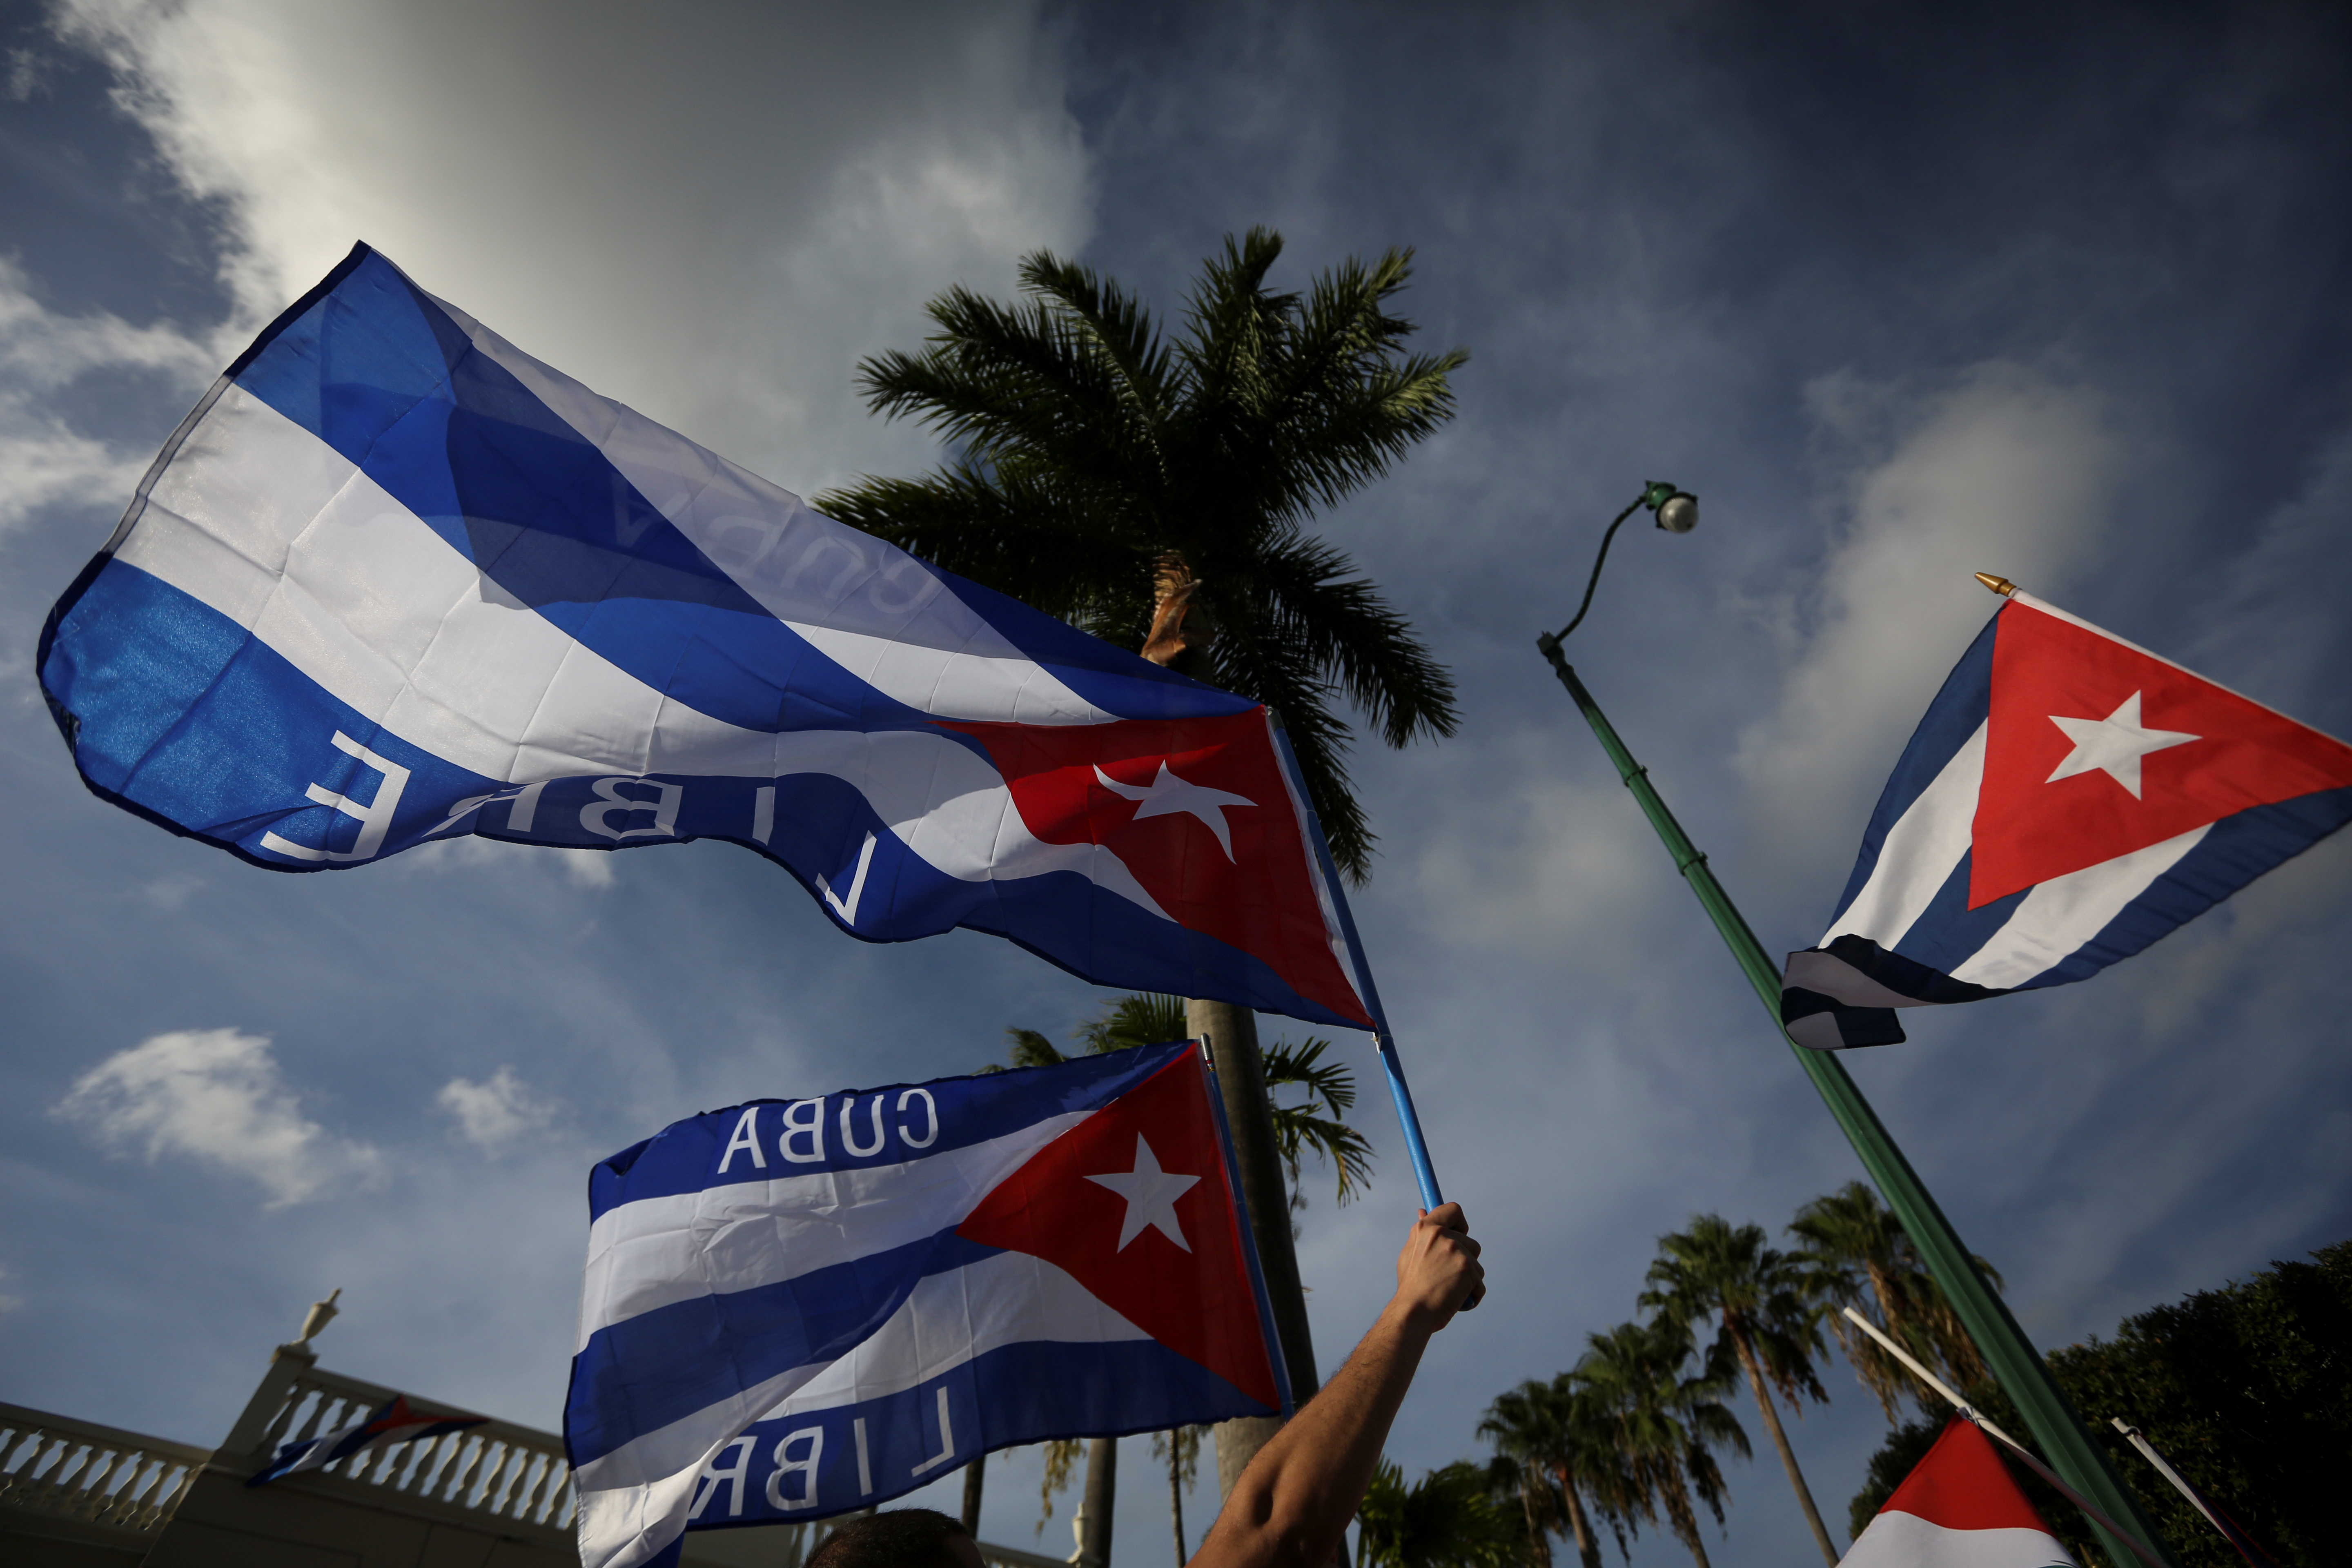 Emigres wave Cuban flags outside Versailles restaurant, in reaction to reports of protests in Cuba against its deteriorating economy, in Miami, Florida, U.S. July 18, 2021. REUTERS/Marco Bello